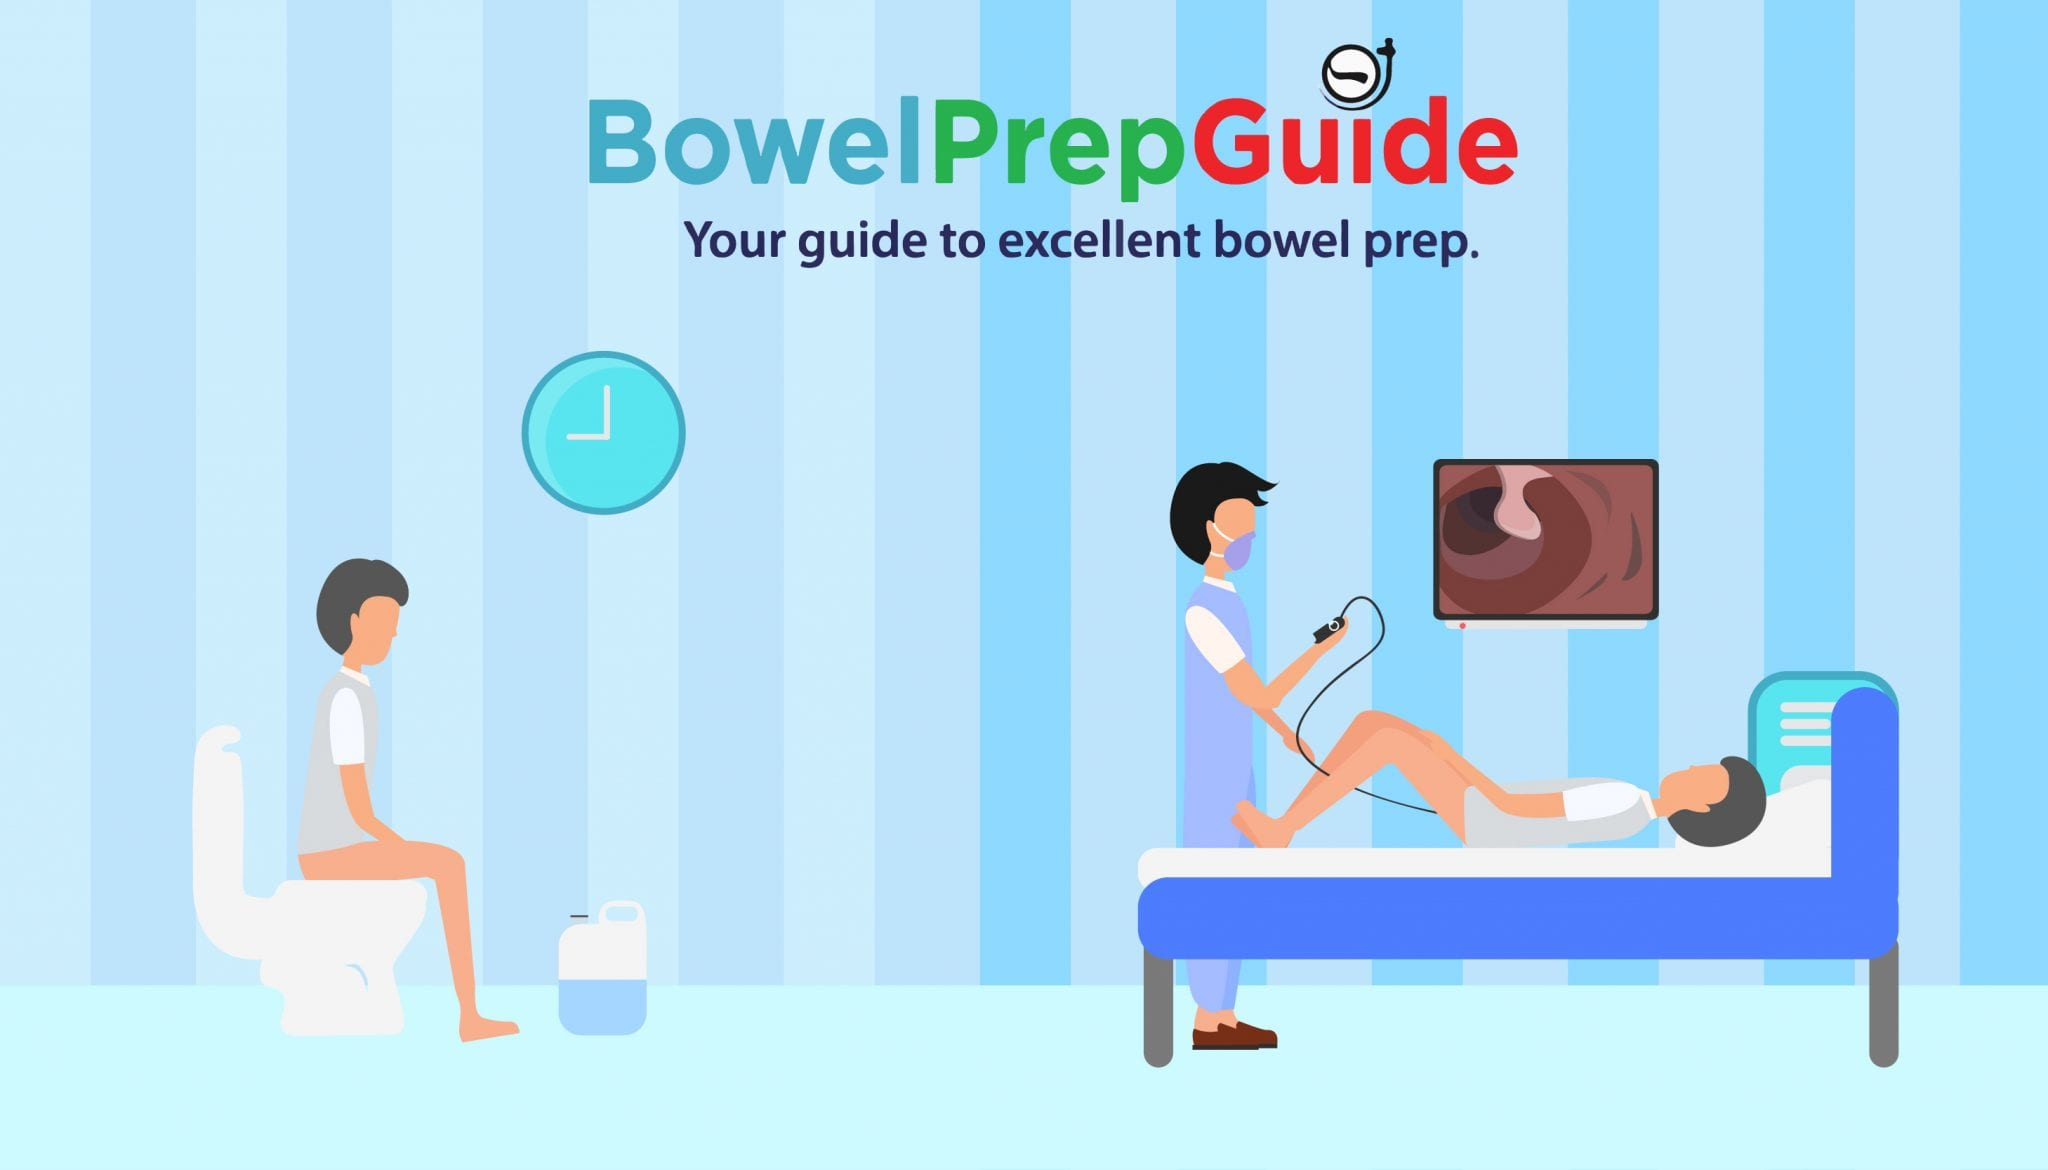 Bowelprepguide.com asnswers your questions about irritable bowel syndrome